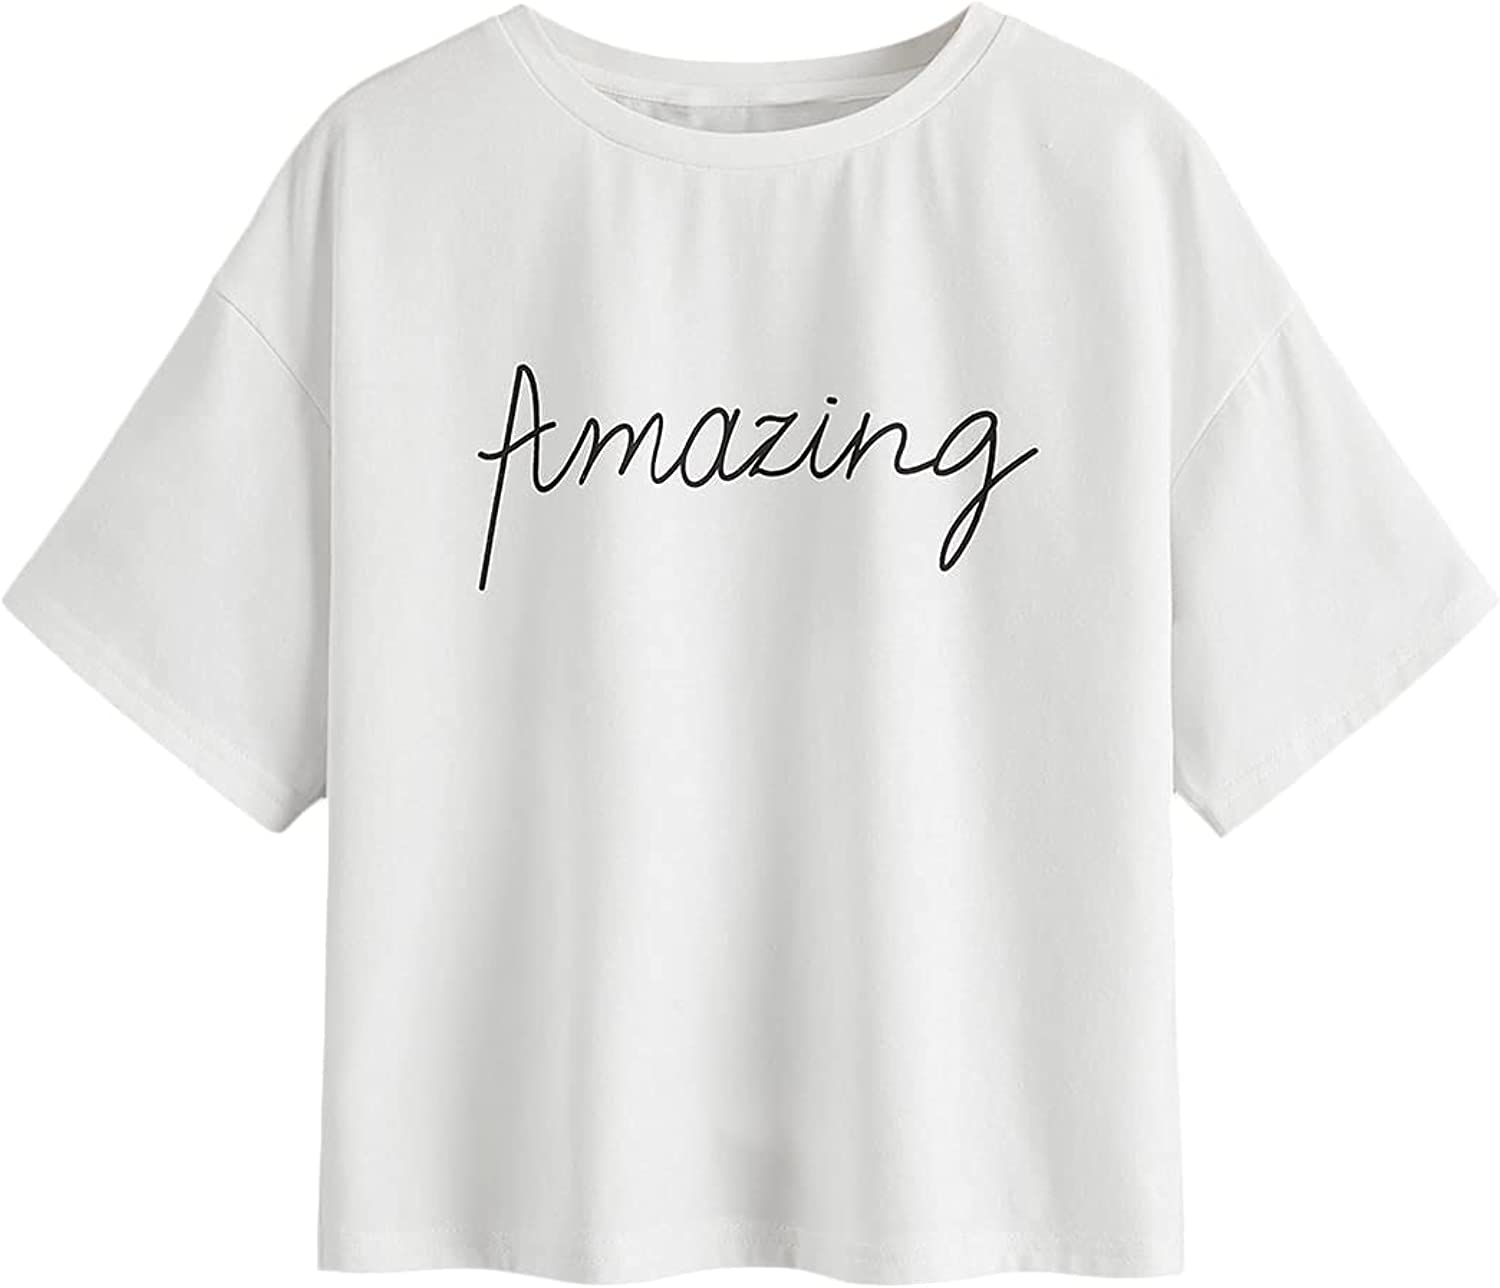 Floerns Girls Casual Letter Graphic Print Short Sleeve Tee Shirts Top